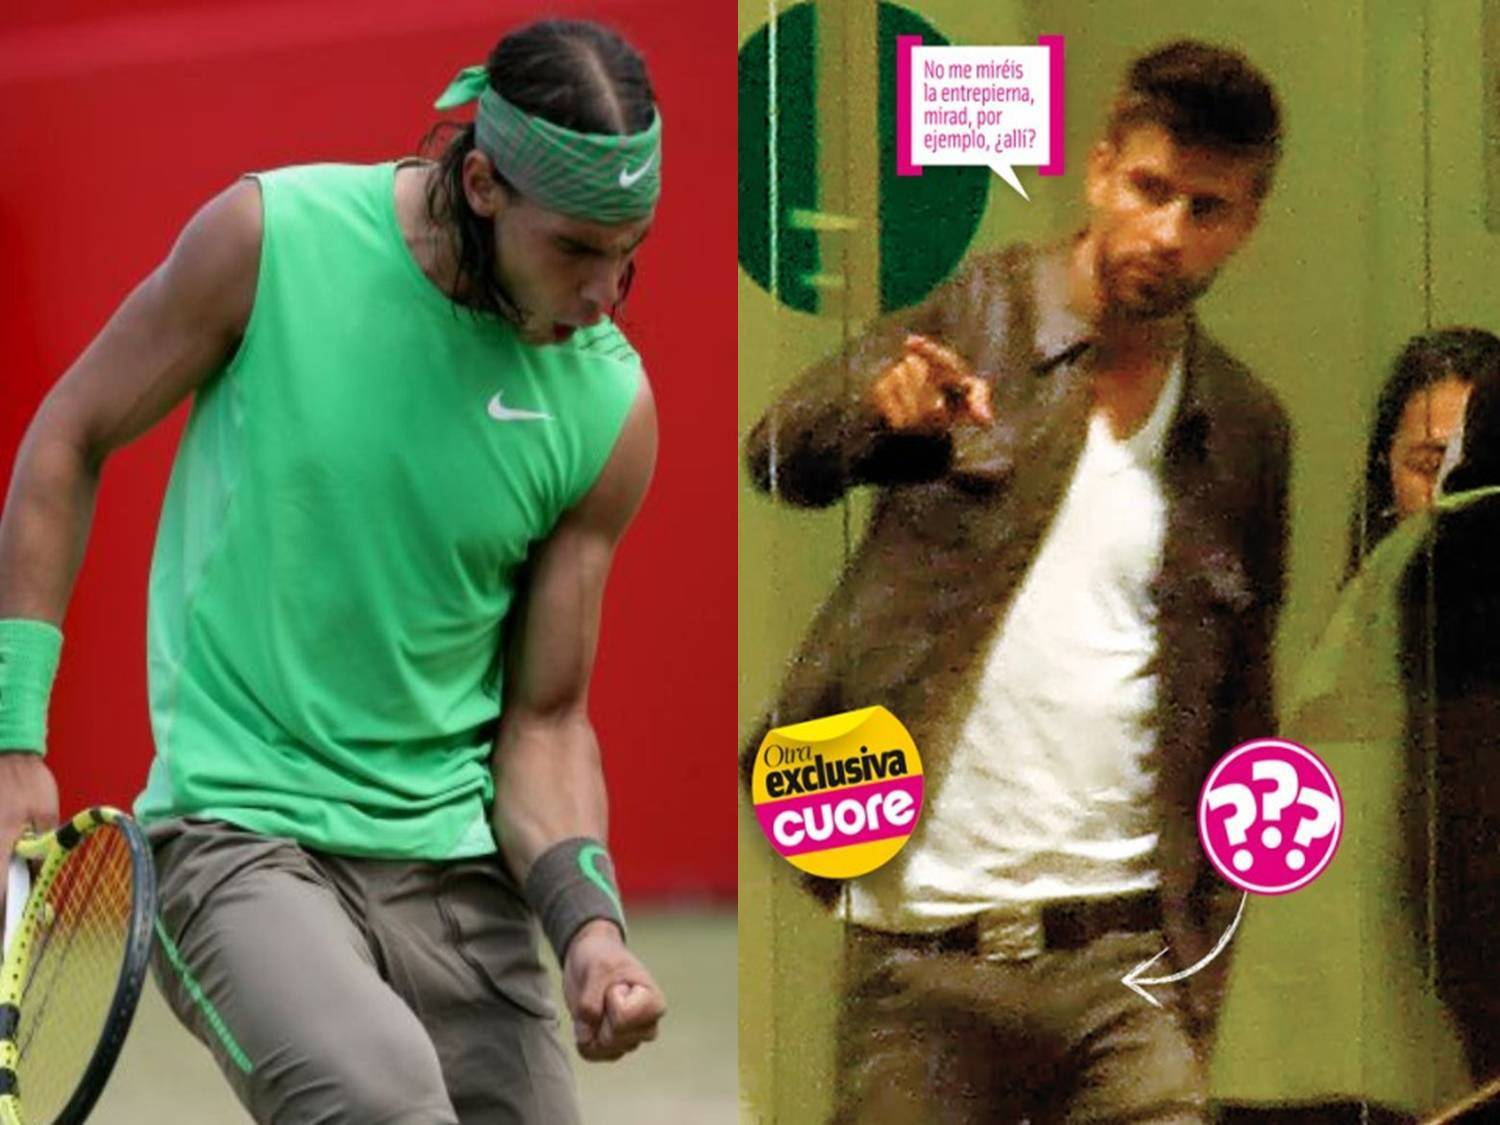 Piqué đã đưa ý kiến about Nadal crotch :I do not look at me crotch, look, for example, there !